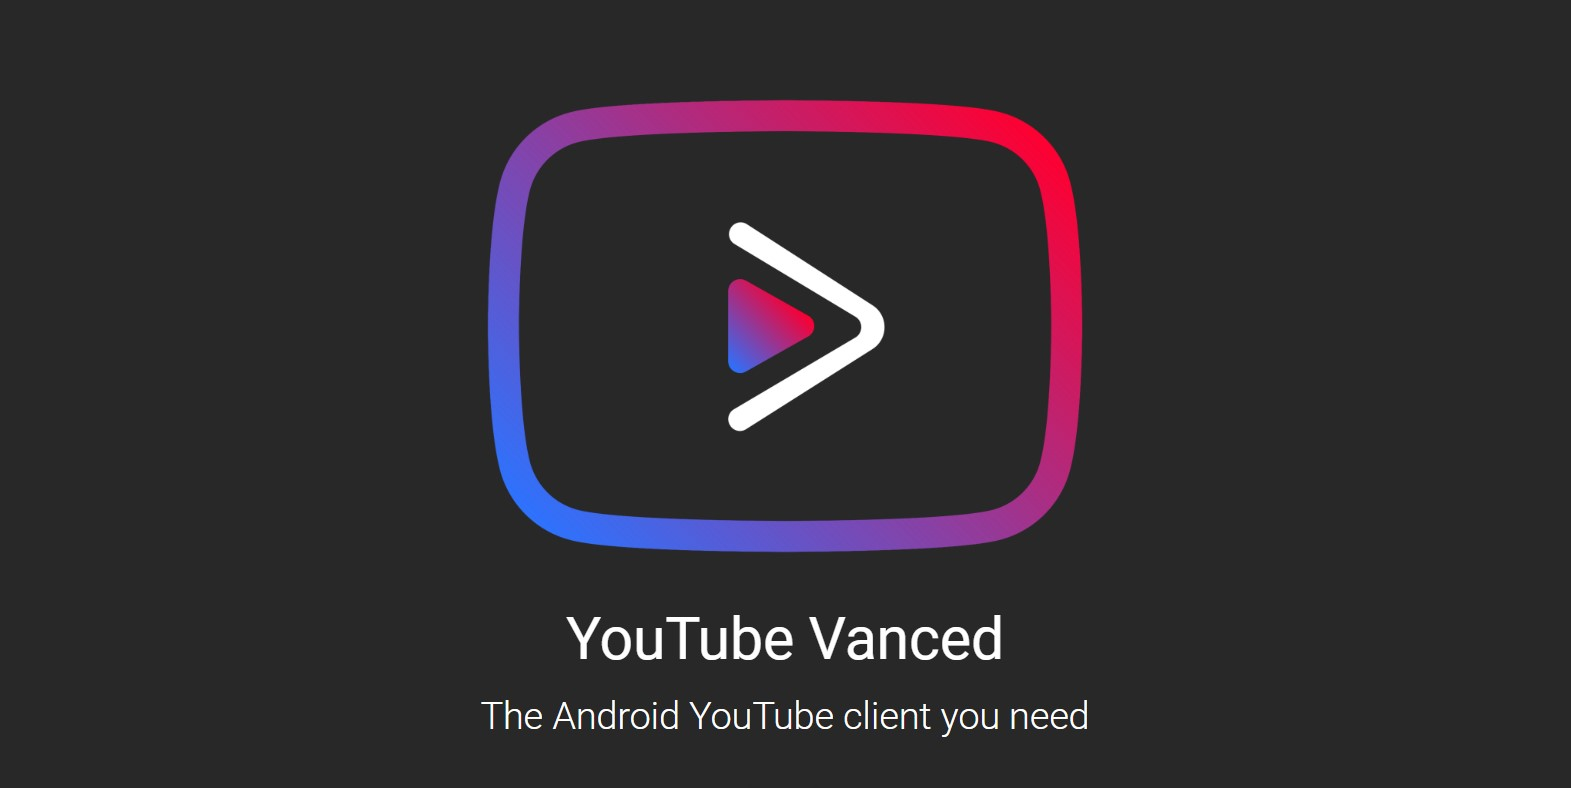 Download and install latest YouTube Vanced v15.05.54 APK for all Android devices [HotFix Update]